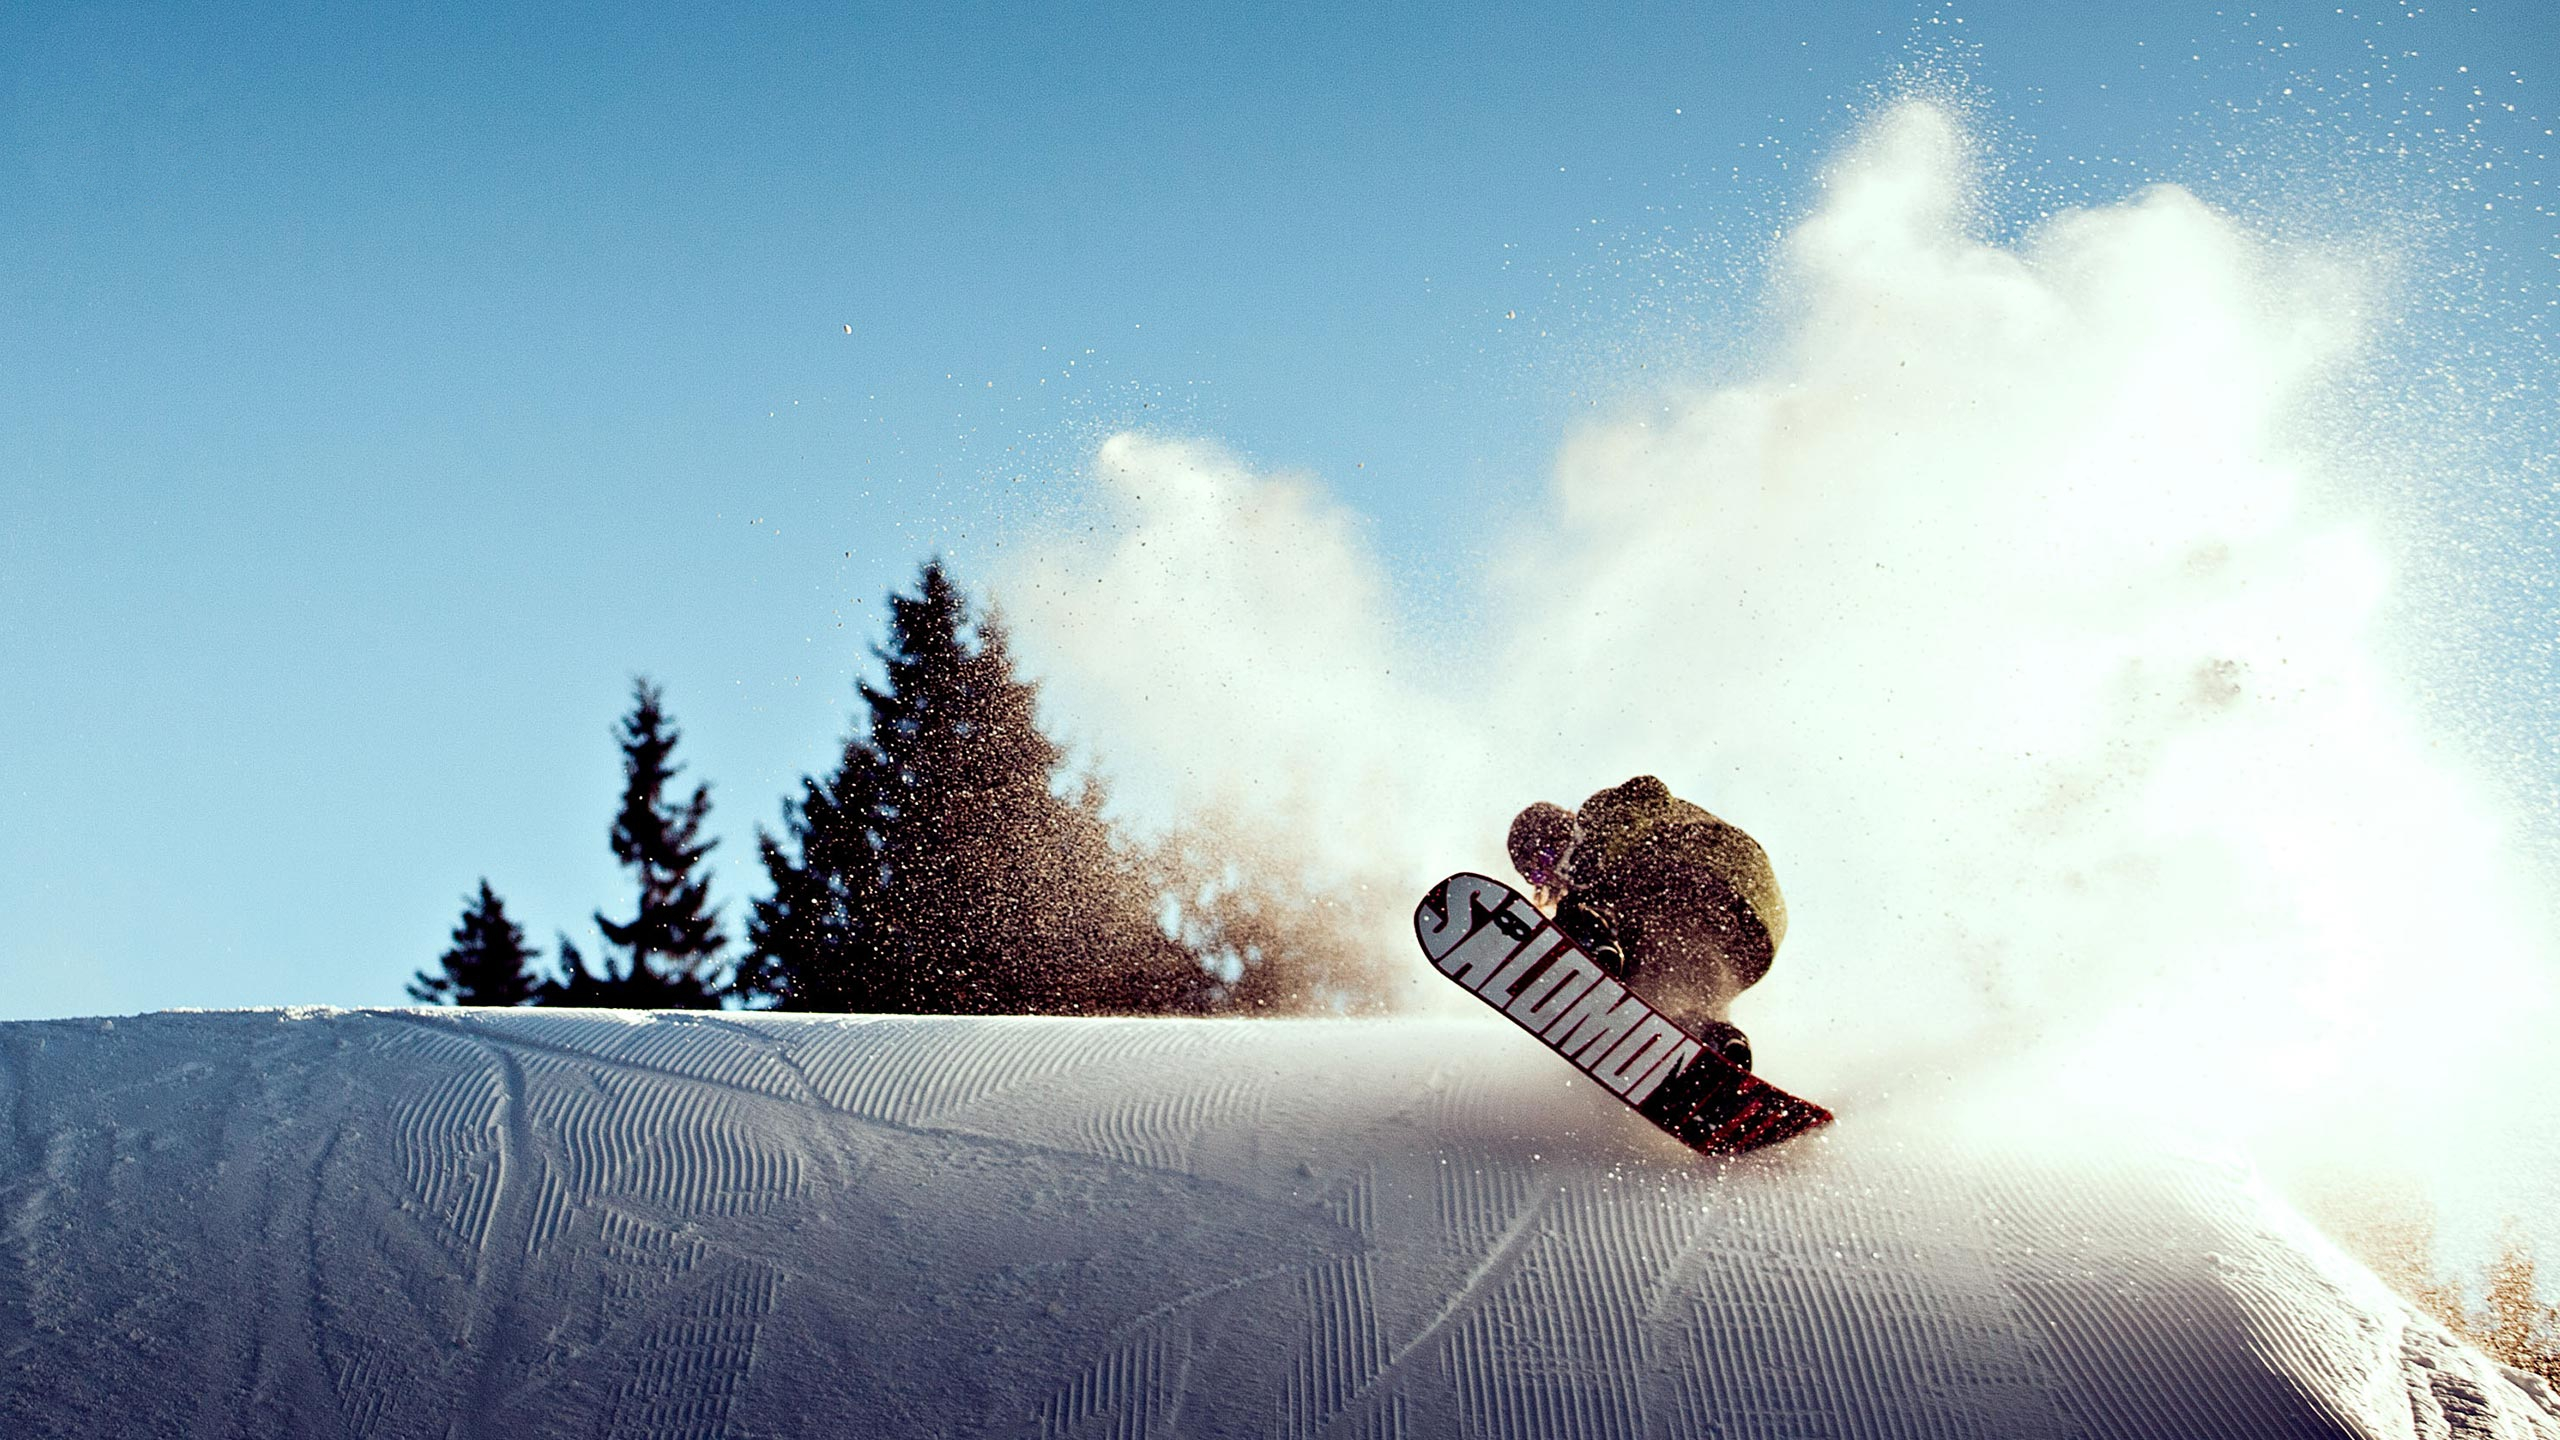 2560x1440 - Snowboarding Wallpapers 9